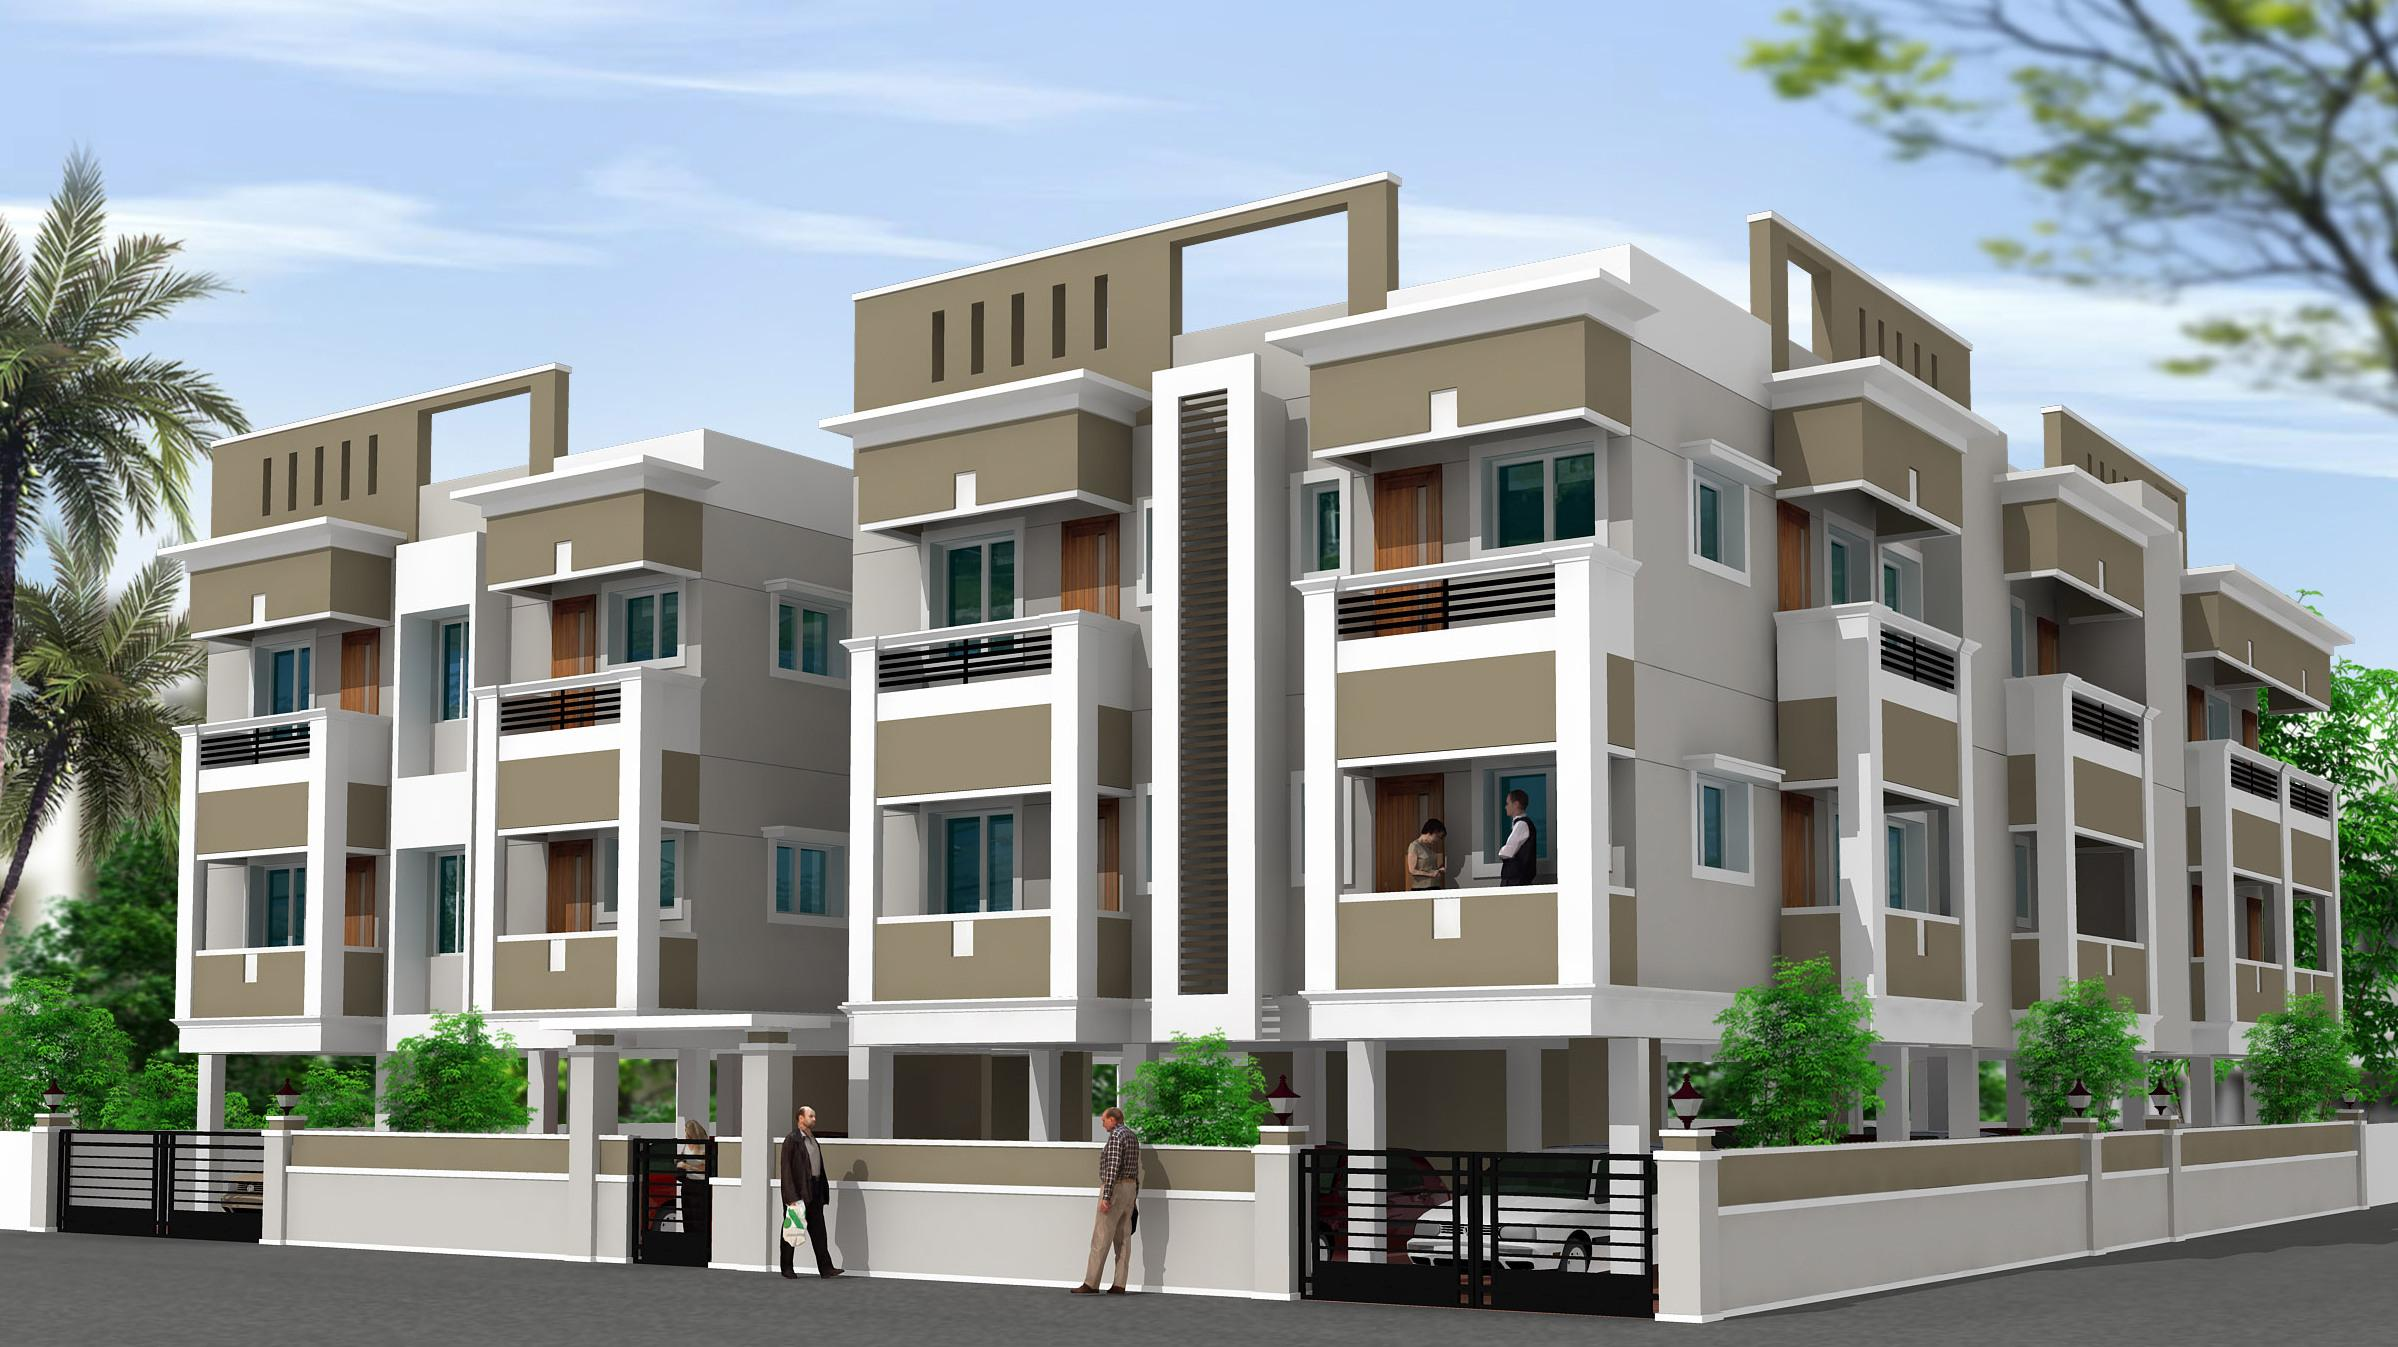 Residential building elevation design with detailing for Residential pictures